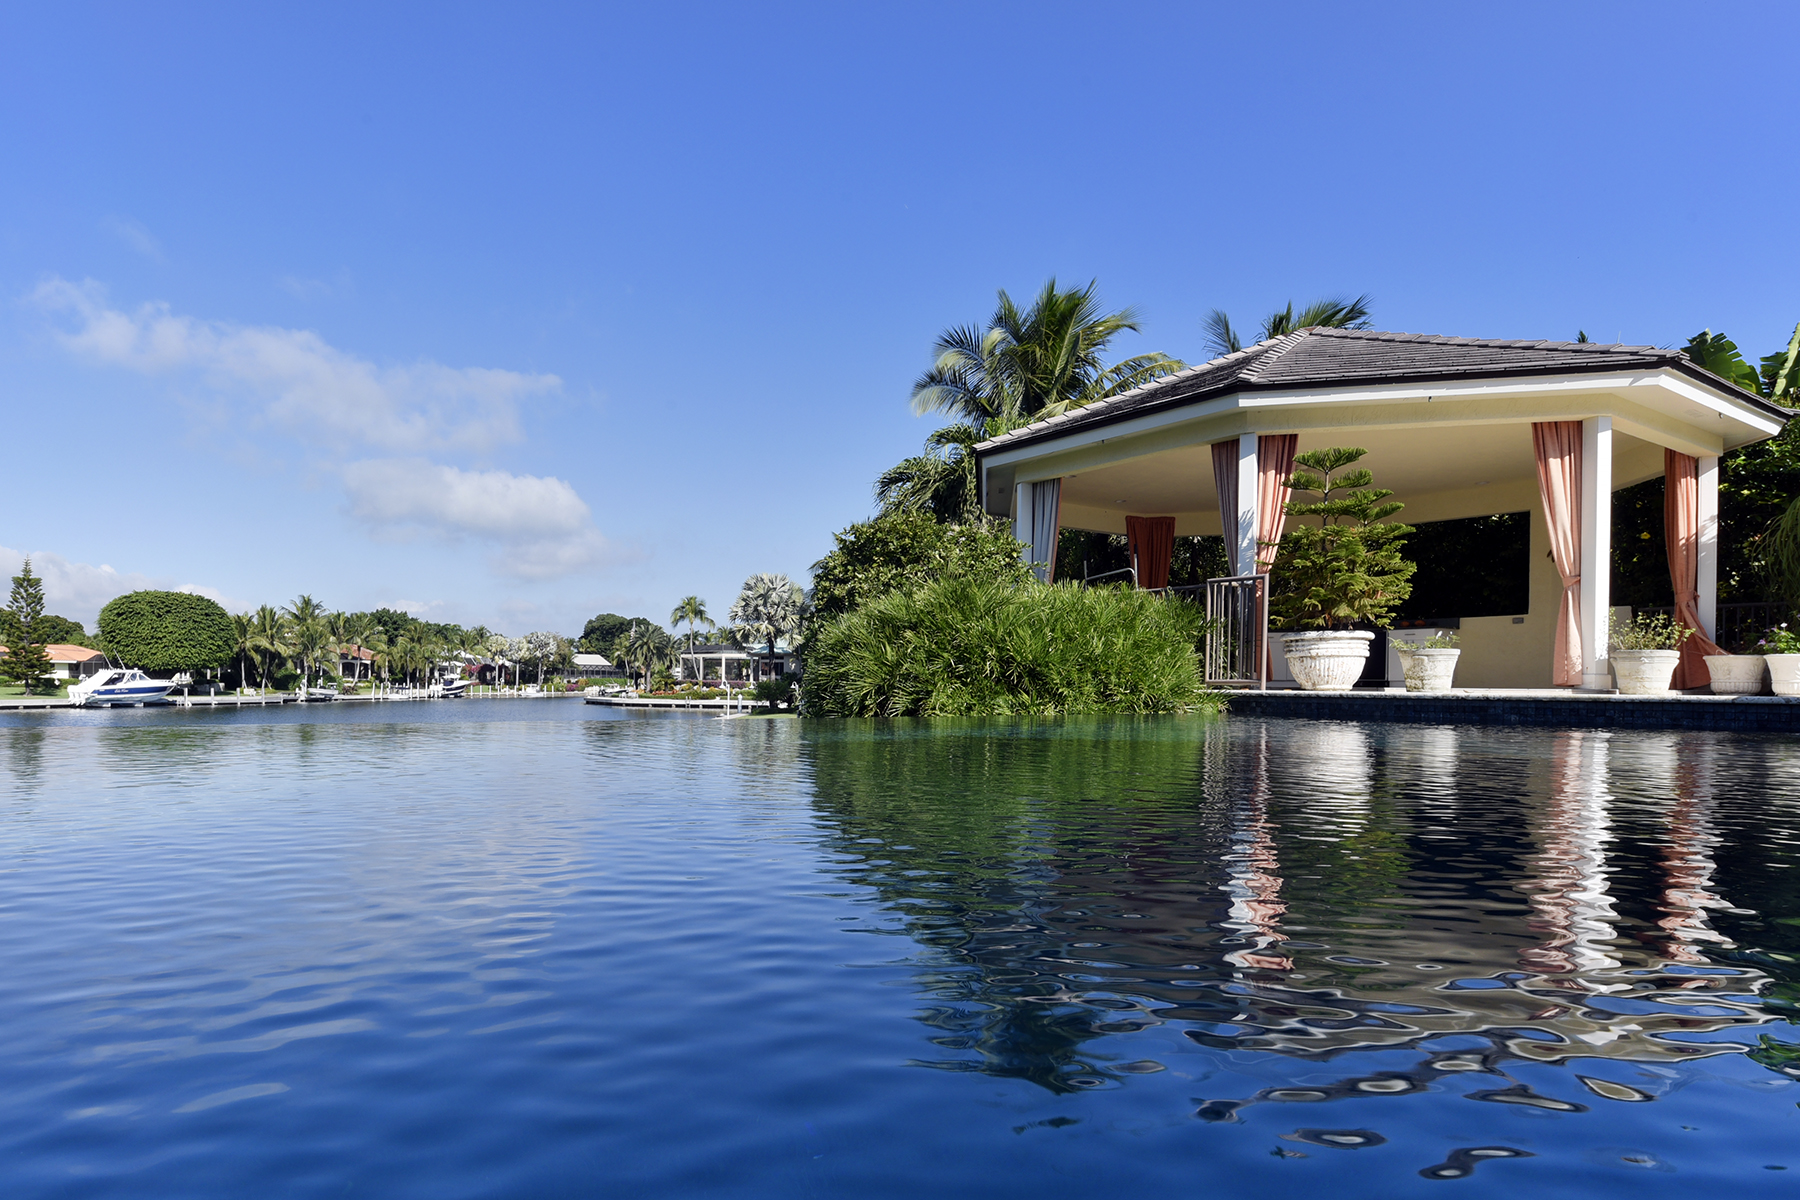 Single Family Home for Sale at Expansive Waterfront Home at Ocean Reef 25 Bay Ridge Road, Ocean Reef Community, Key Largo, Florida, 33037 United States